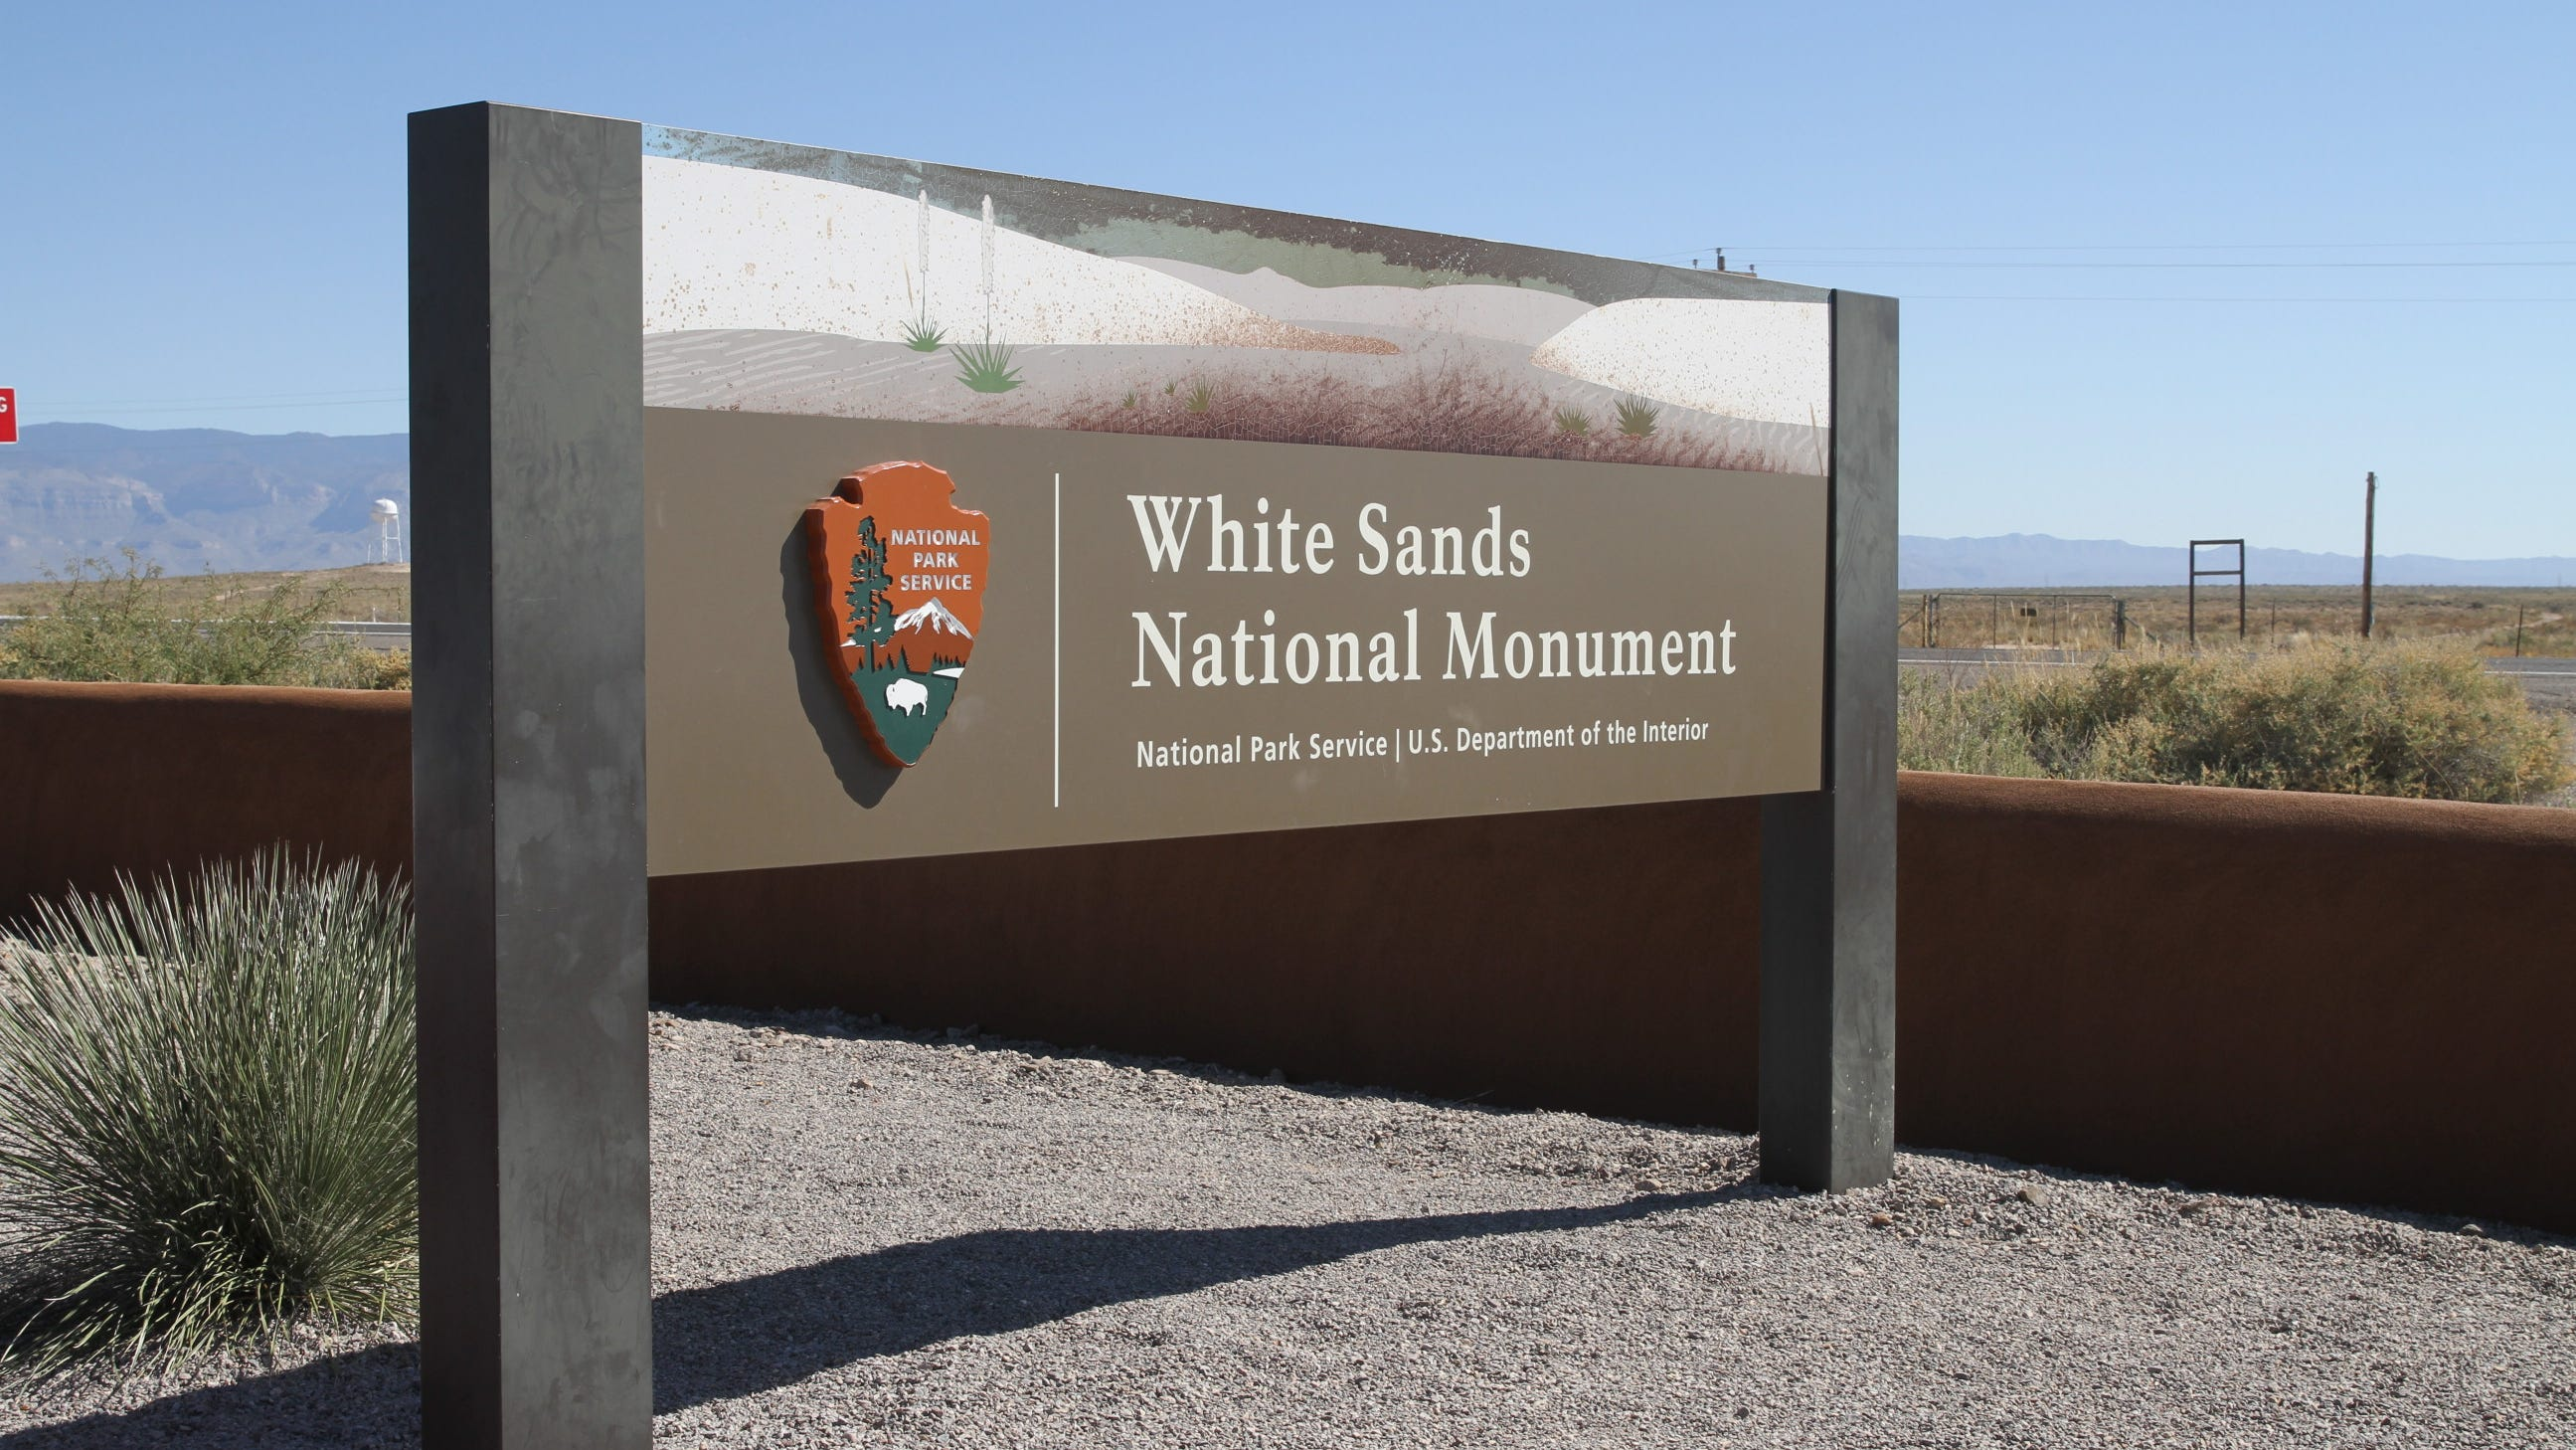 White Sands could become NM's next national park